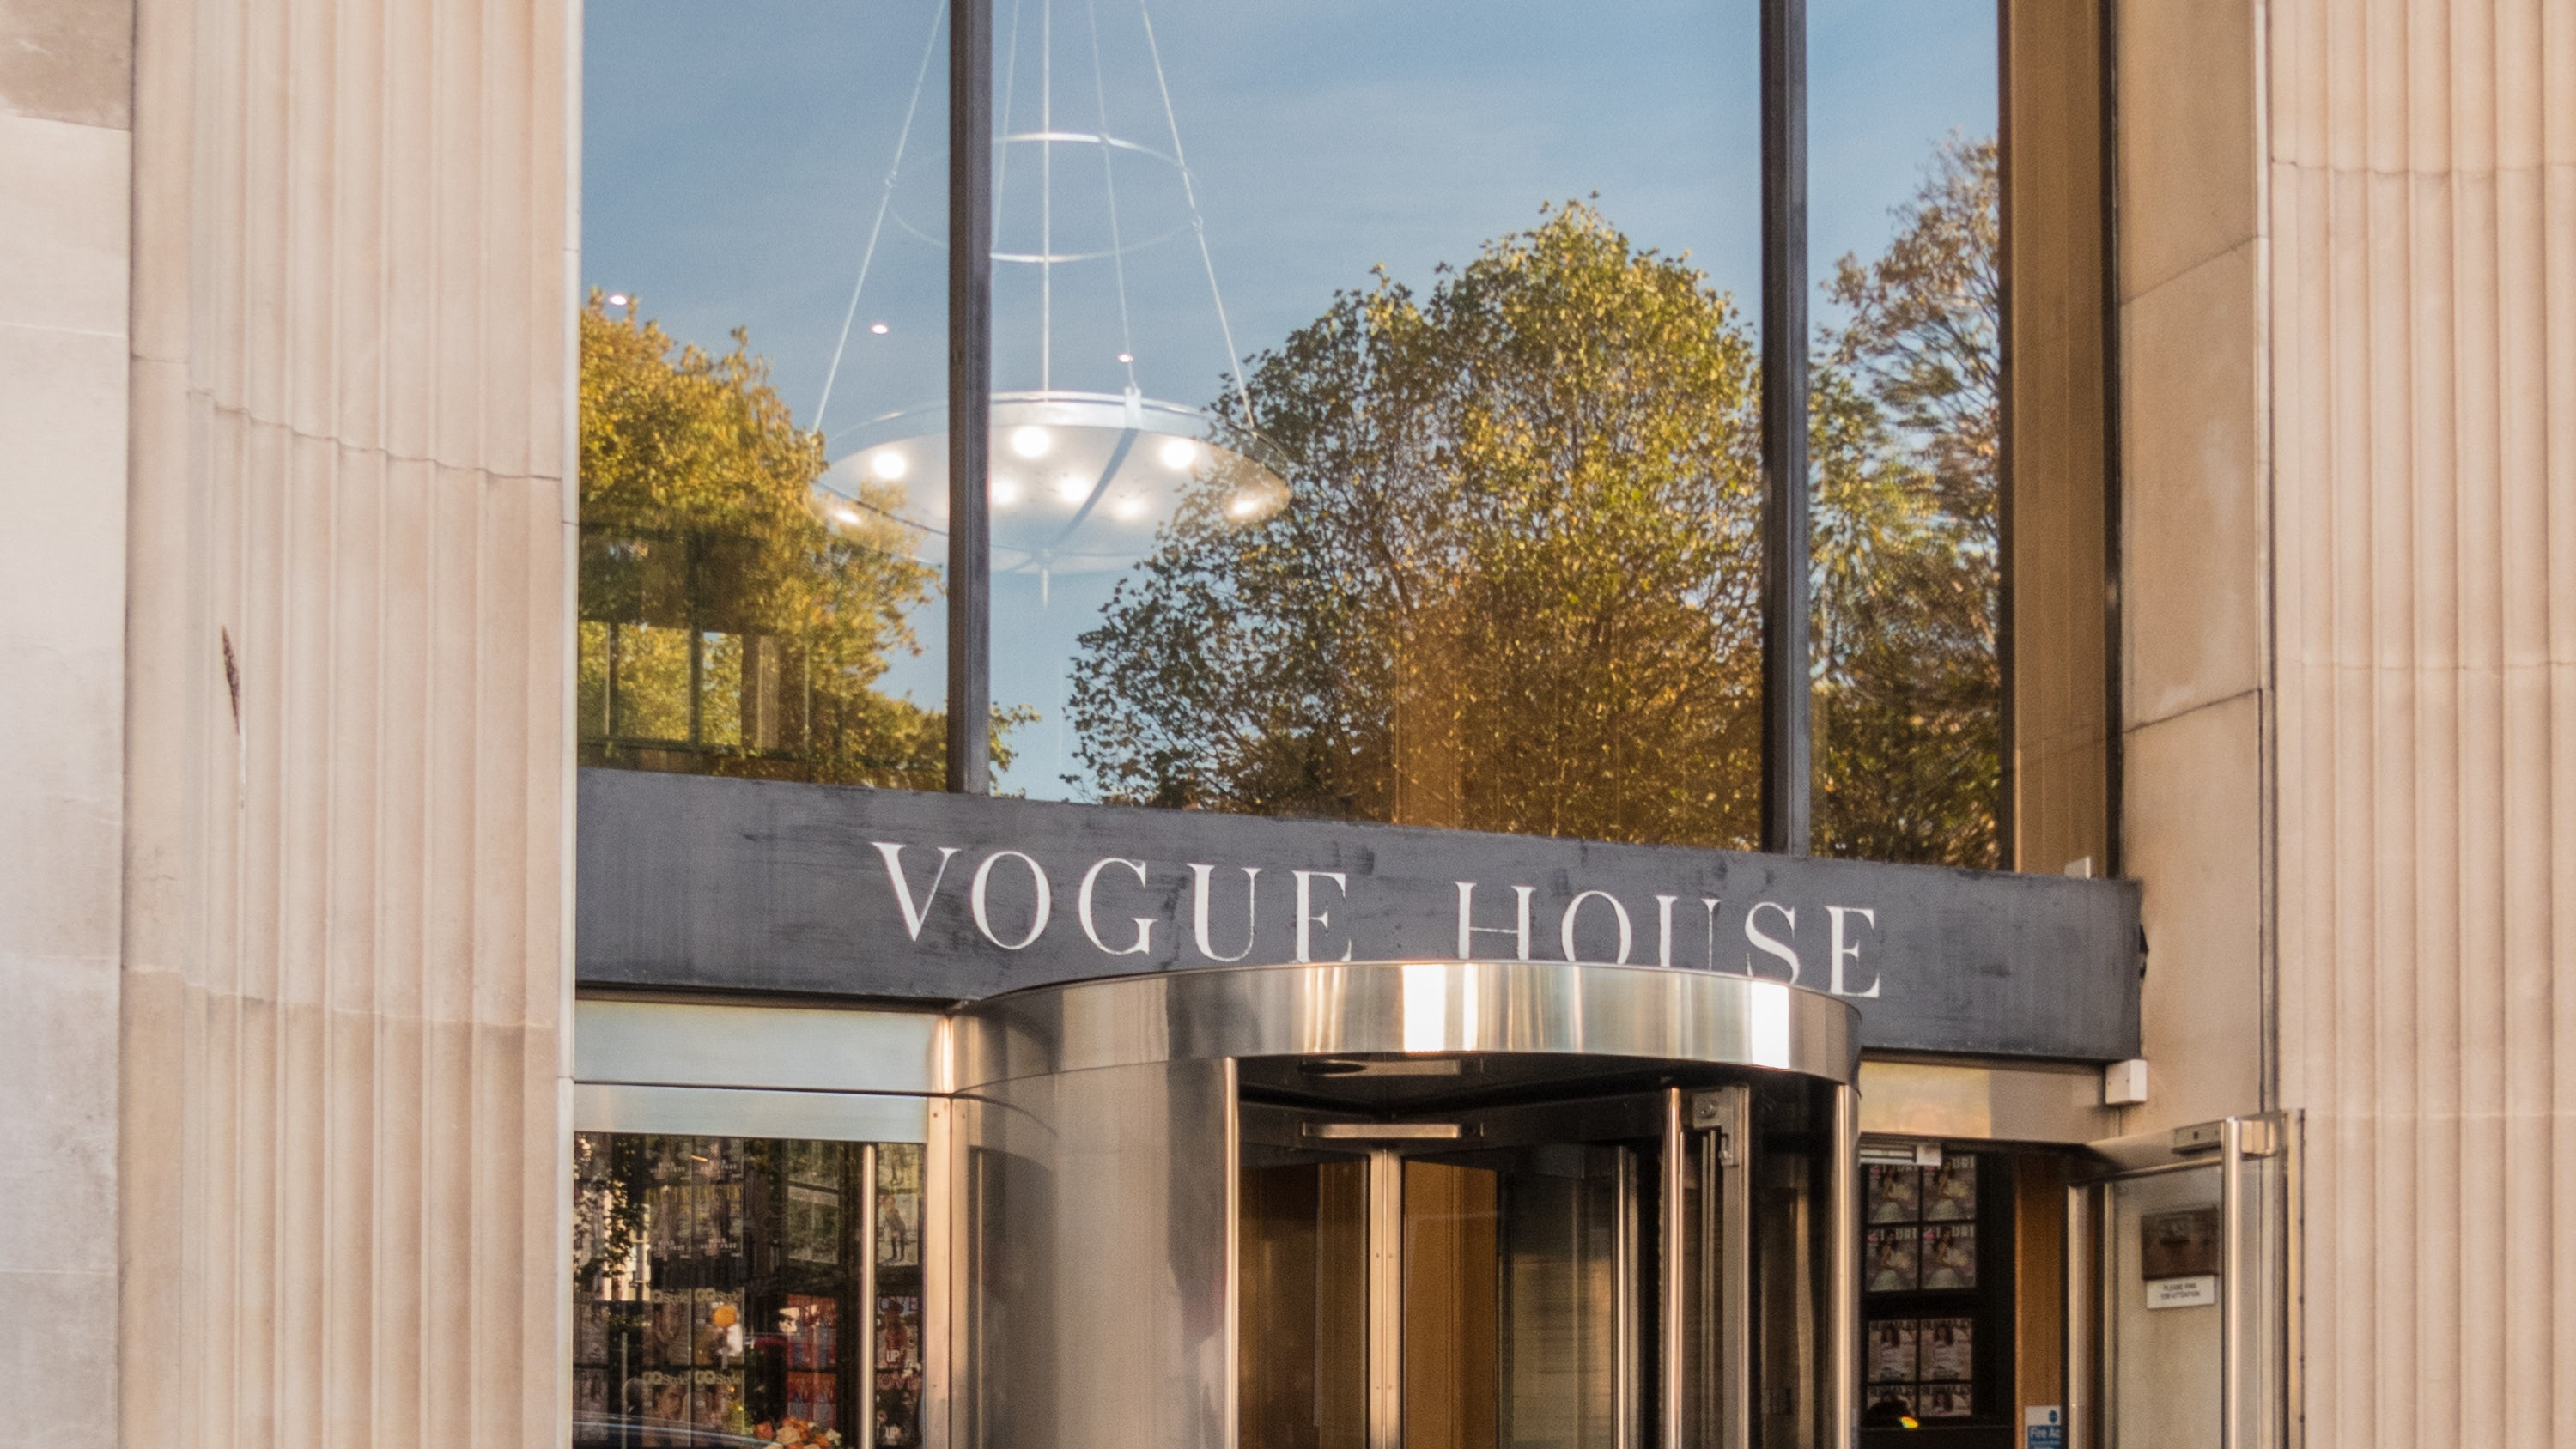 Vogue House | Source: Shutterstock